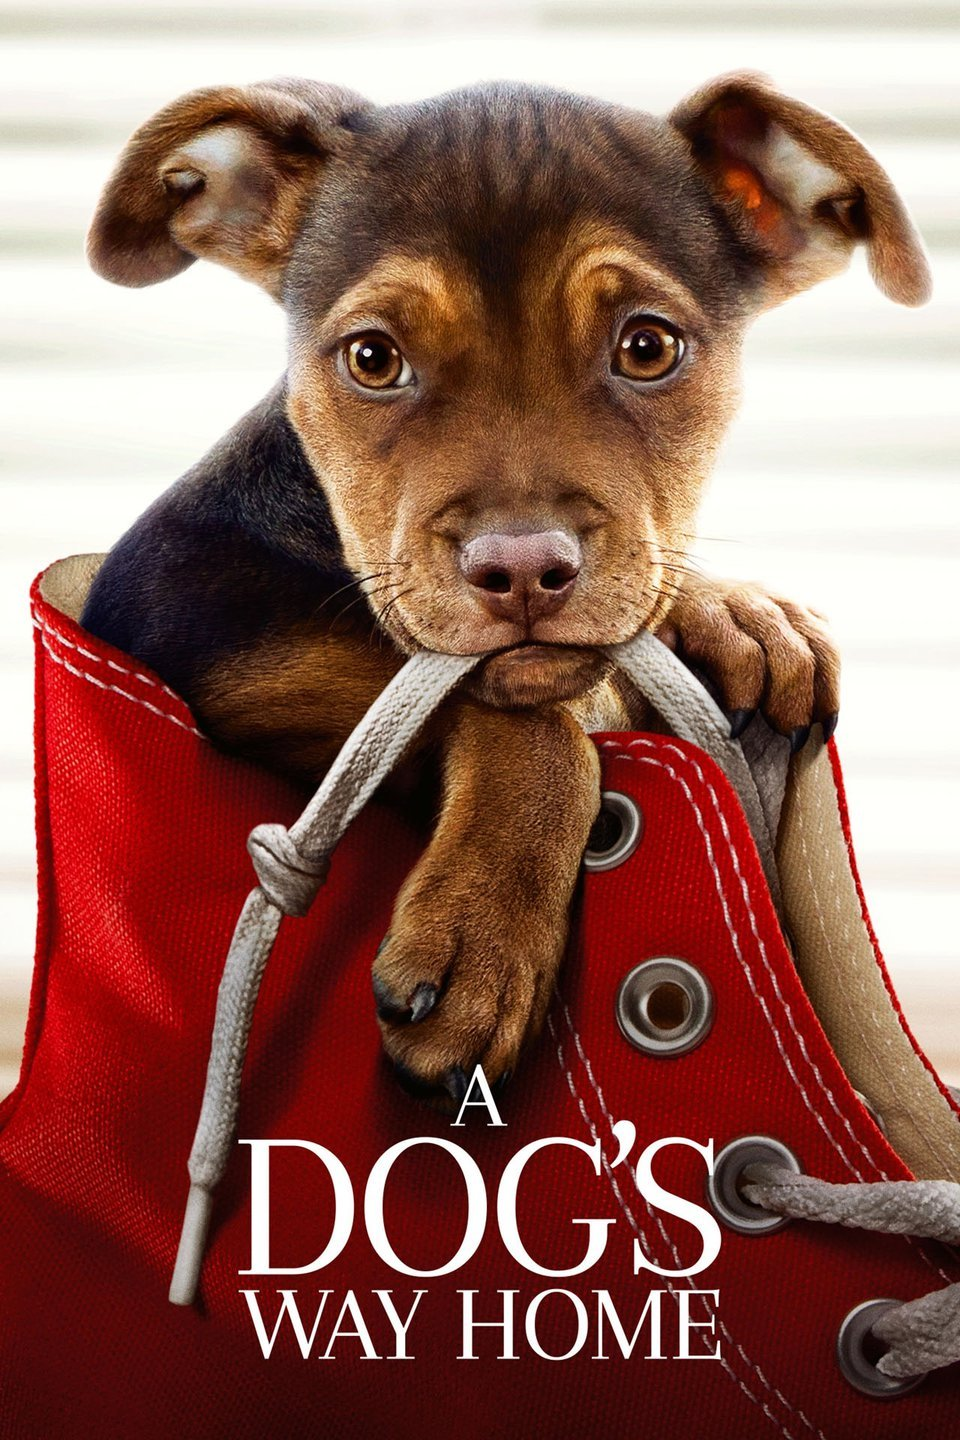 A Dog's Way Home (2019)